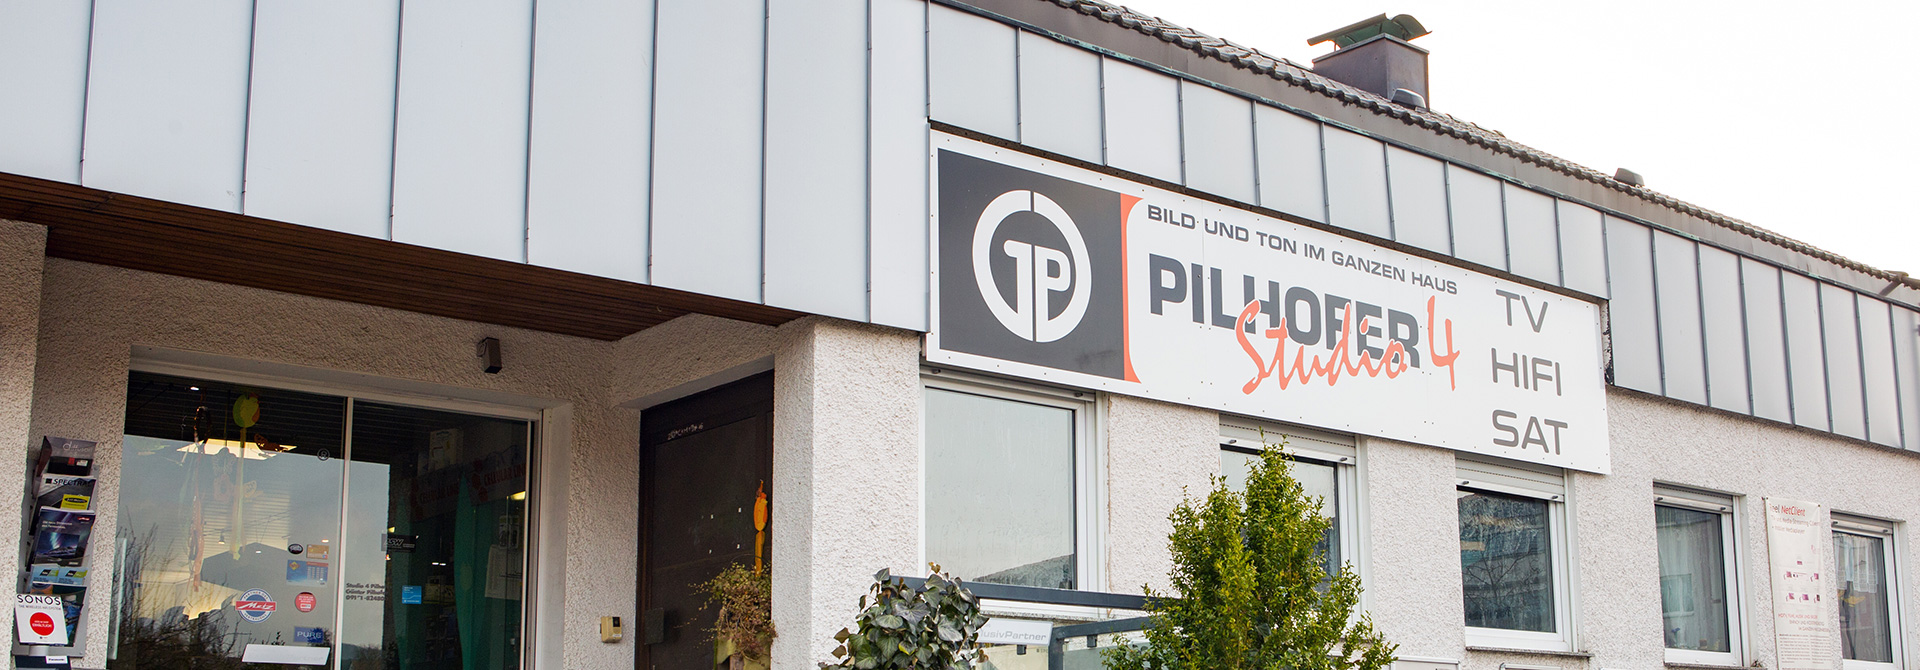 STUDIO 4 PILHOFER